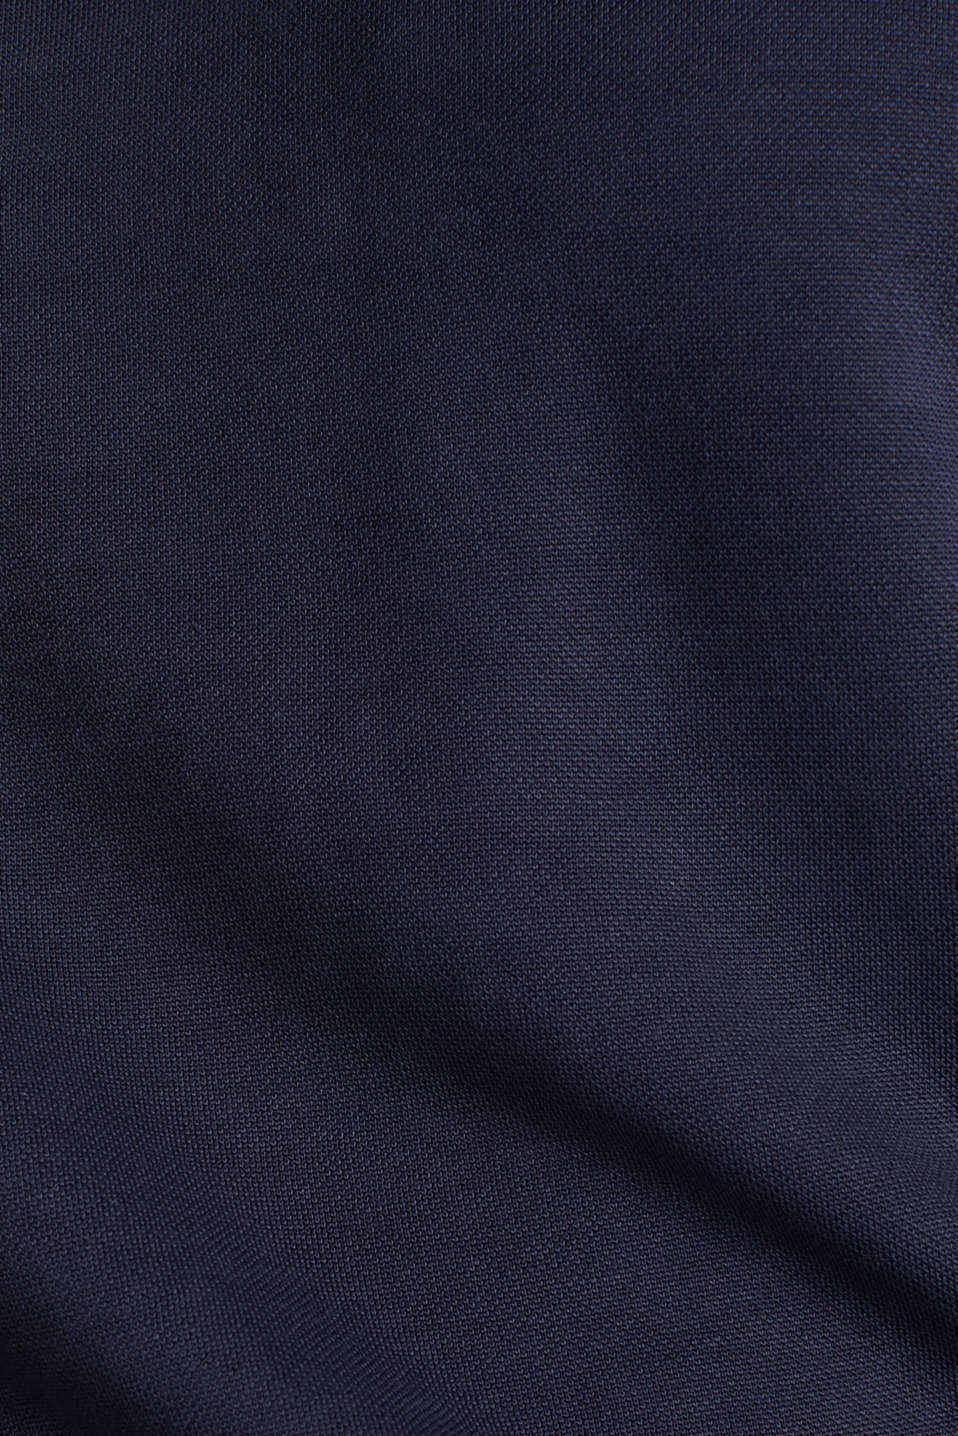 Piqué top with a wide decorative trim, NAVY, detail image number 4